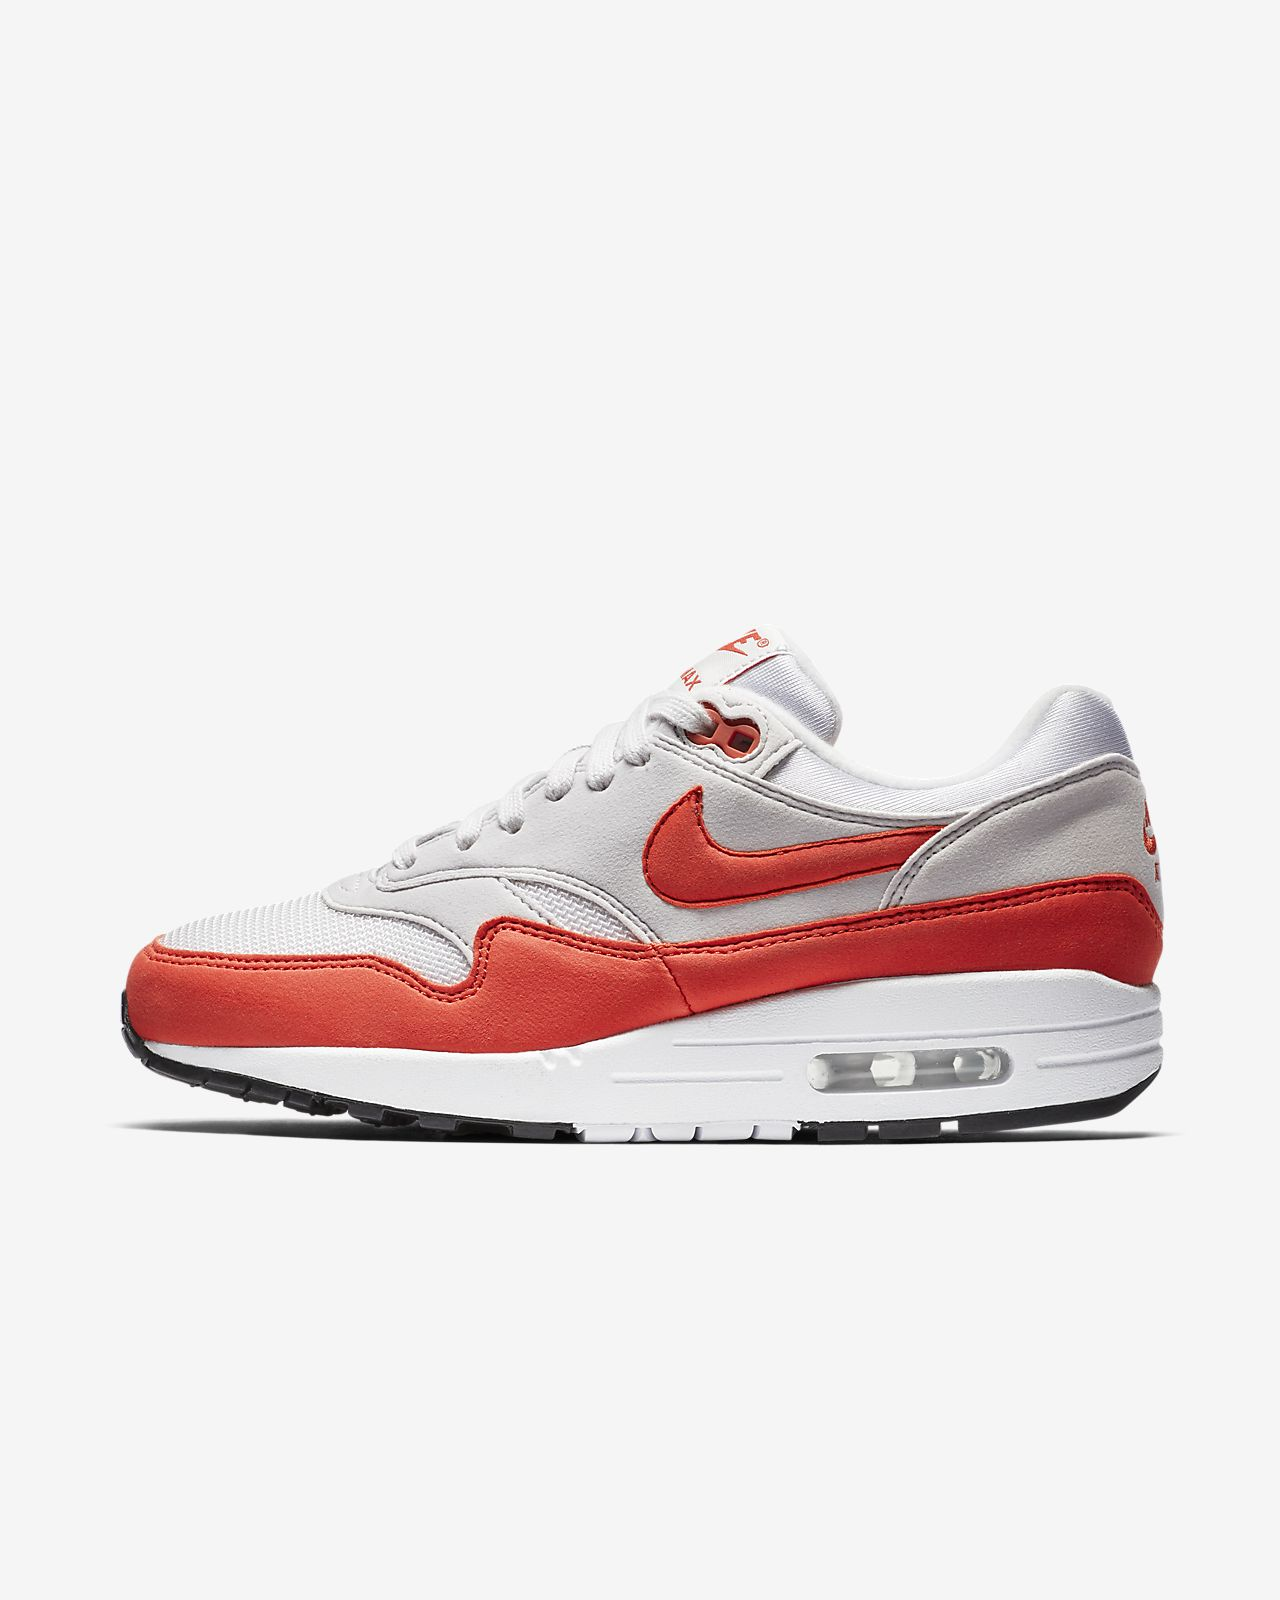 nike air max women shoes red